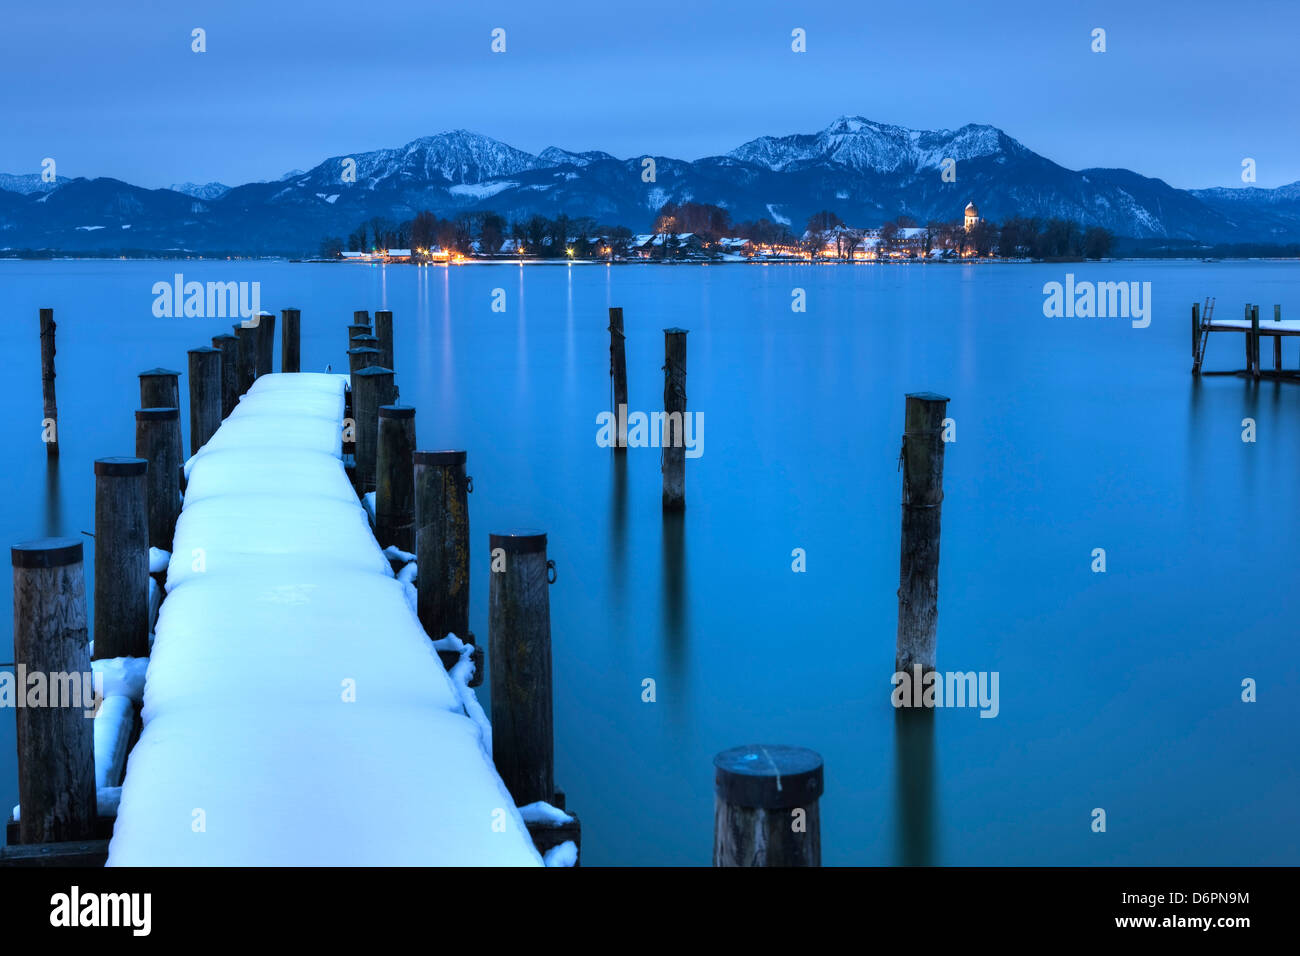 View of Frauen Island from the shore of Lake Chiemsee, Bavaria, Germany, Europe - Stock Image